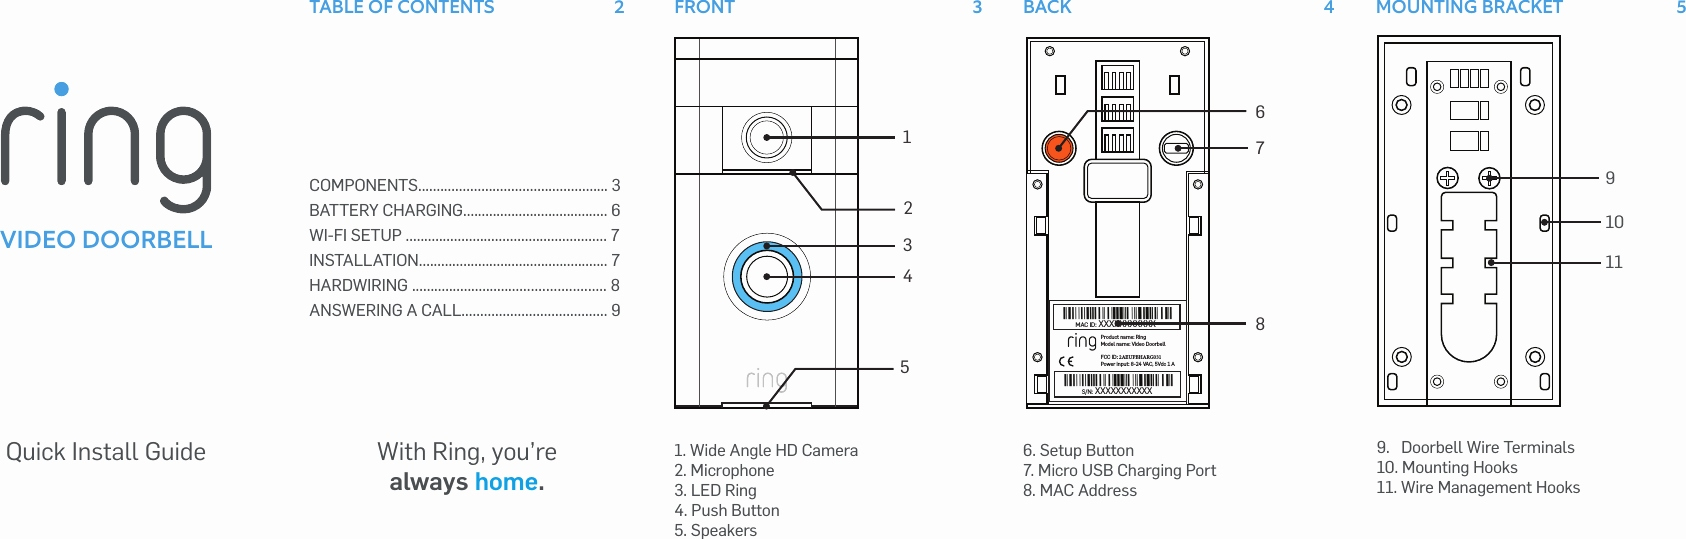 hight resolution of bell wiring diagram 3 wiring diagrams lolnutone doorbell wiring diagrams wiring library car stereo diagram bell